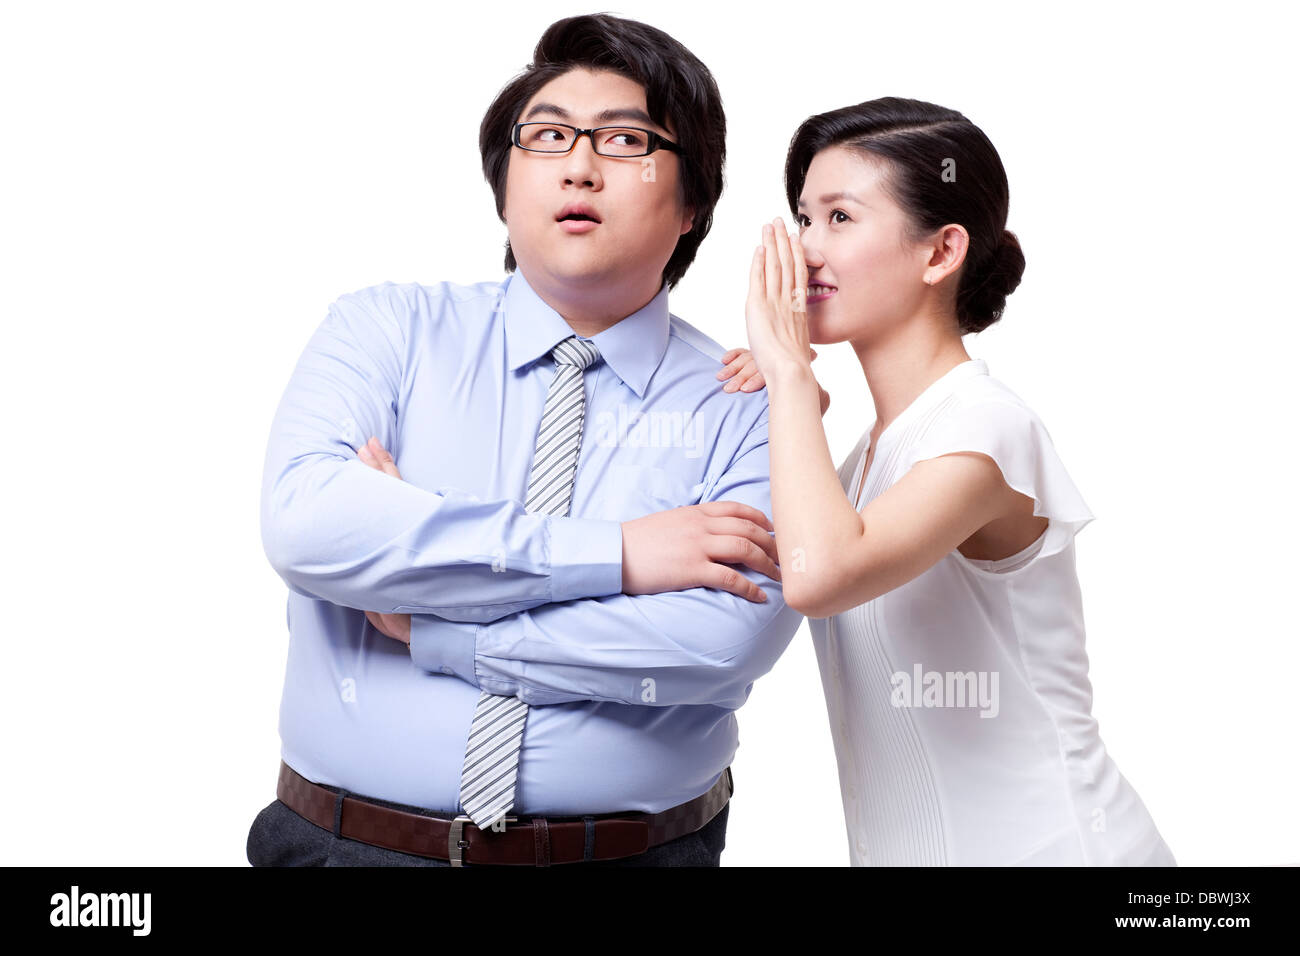 Business partner talking in secret - Stock Image